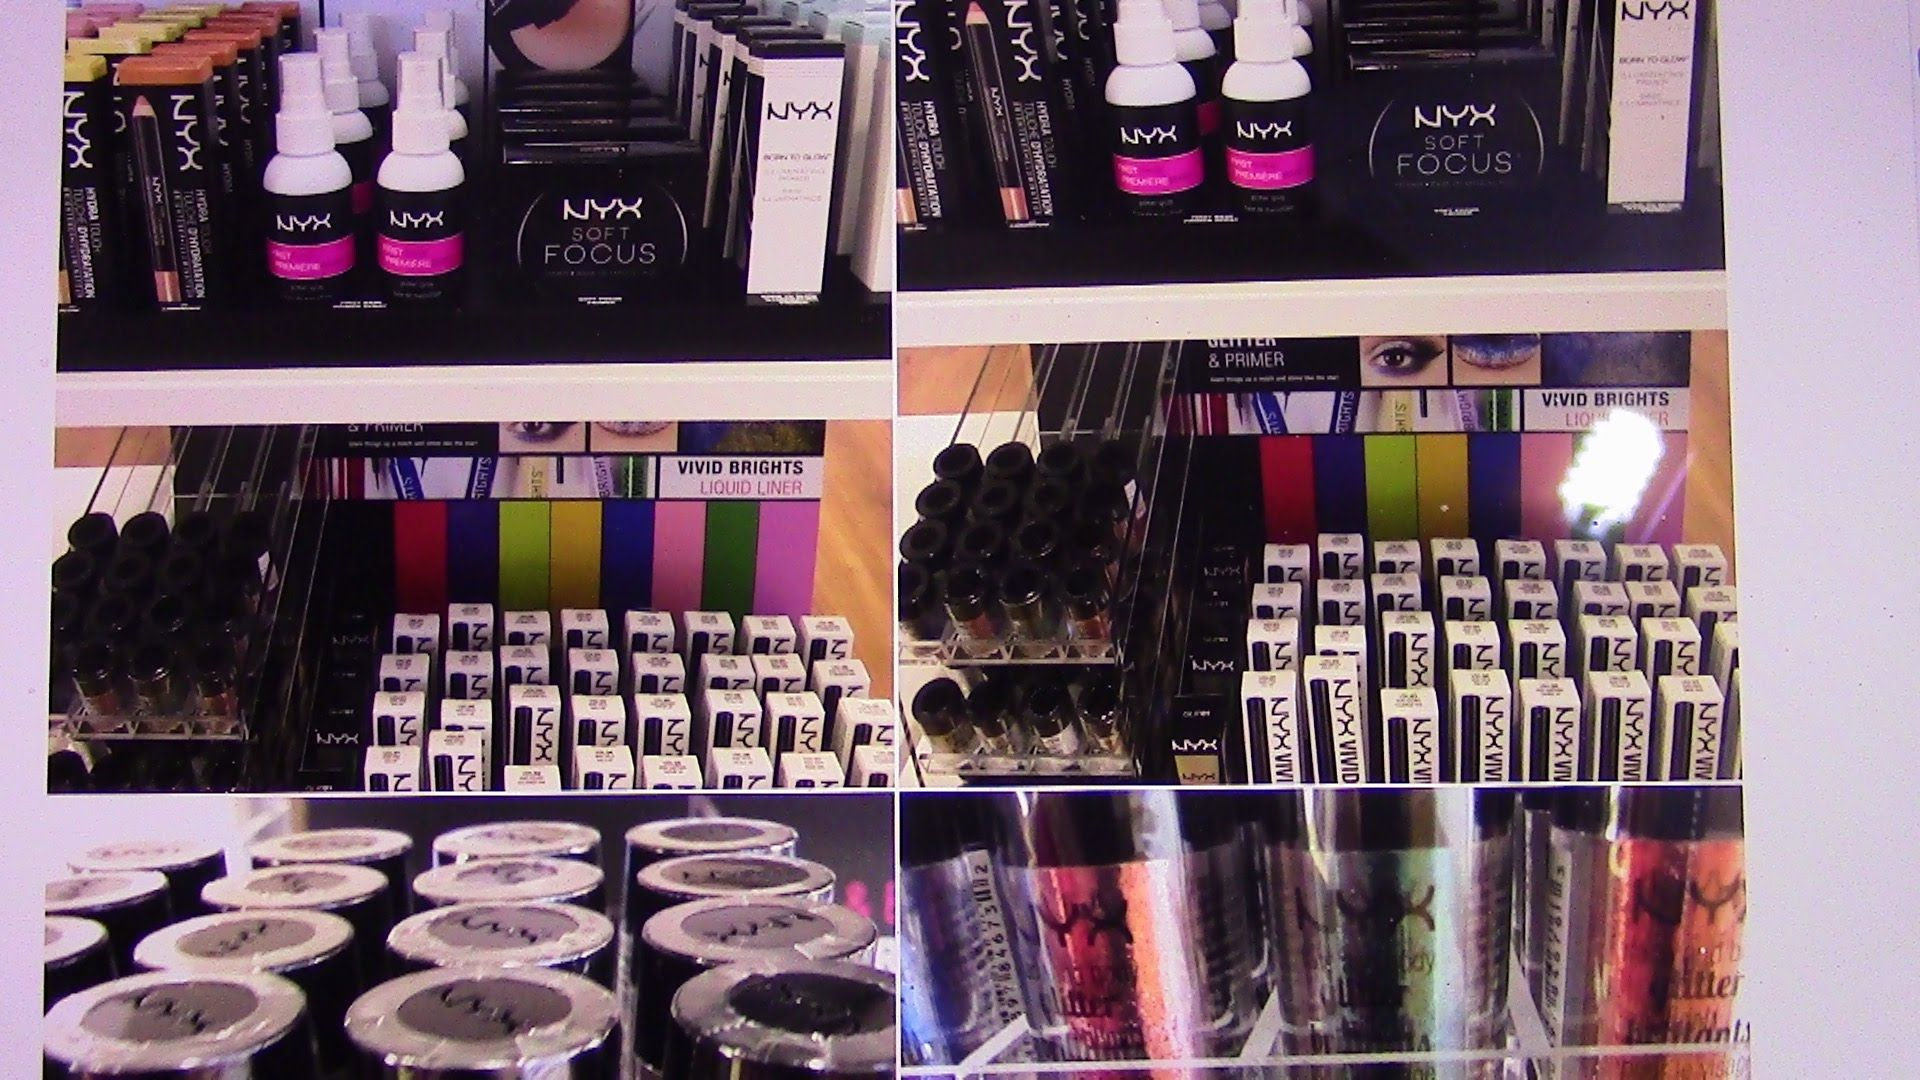 NEW NYX COSMETICES AT ULTA YOU WILL LOVE Nyx cosmetics